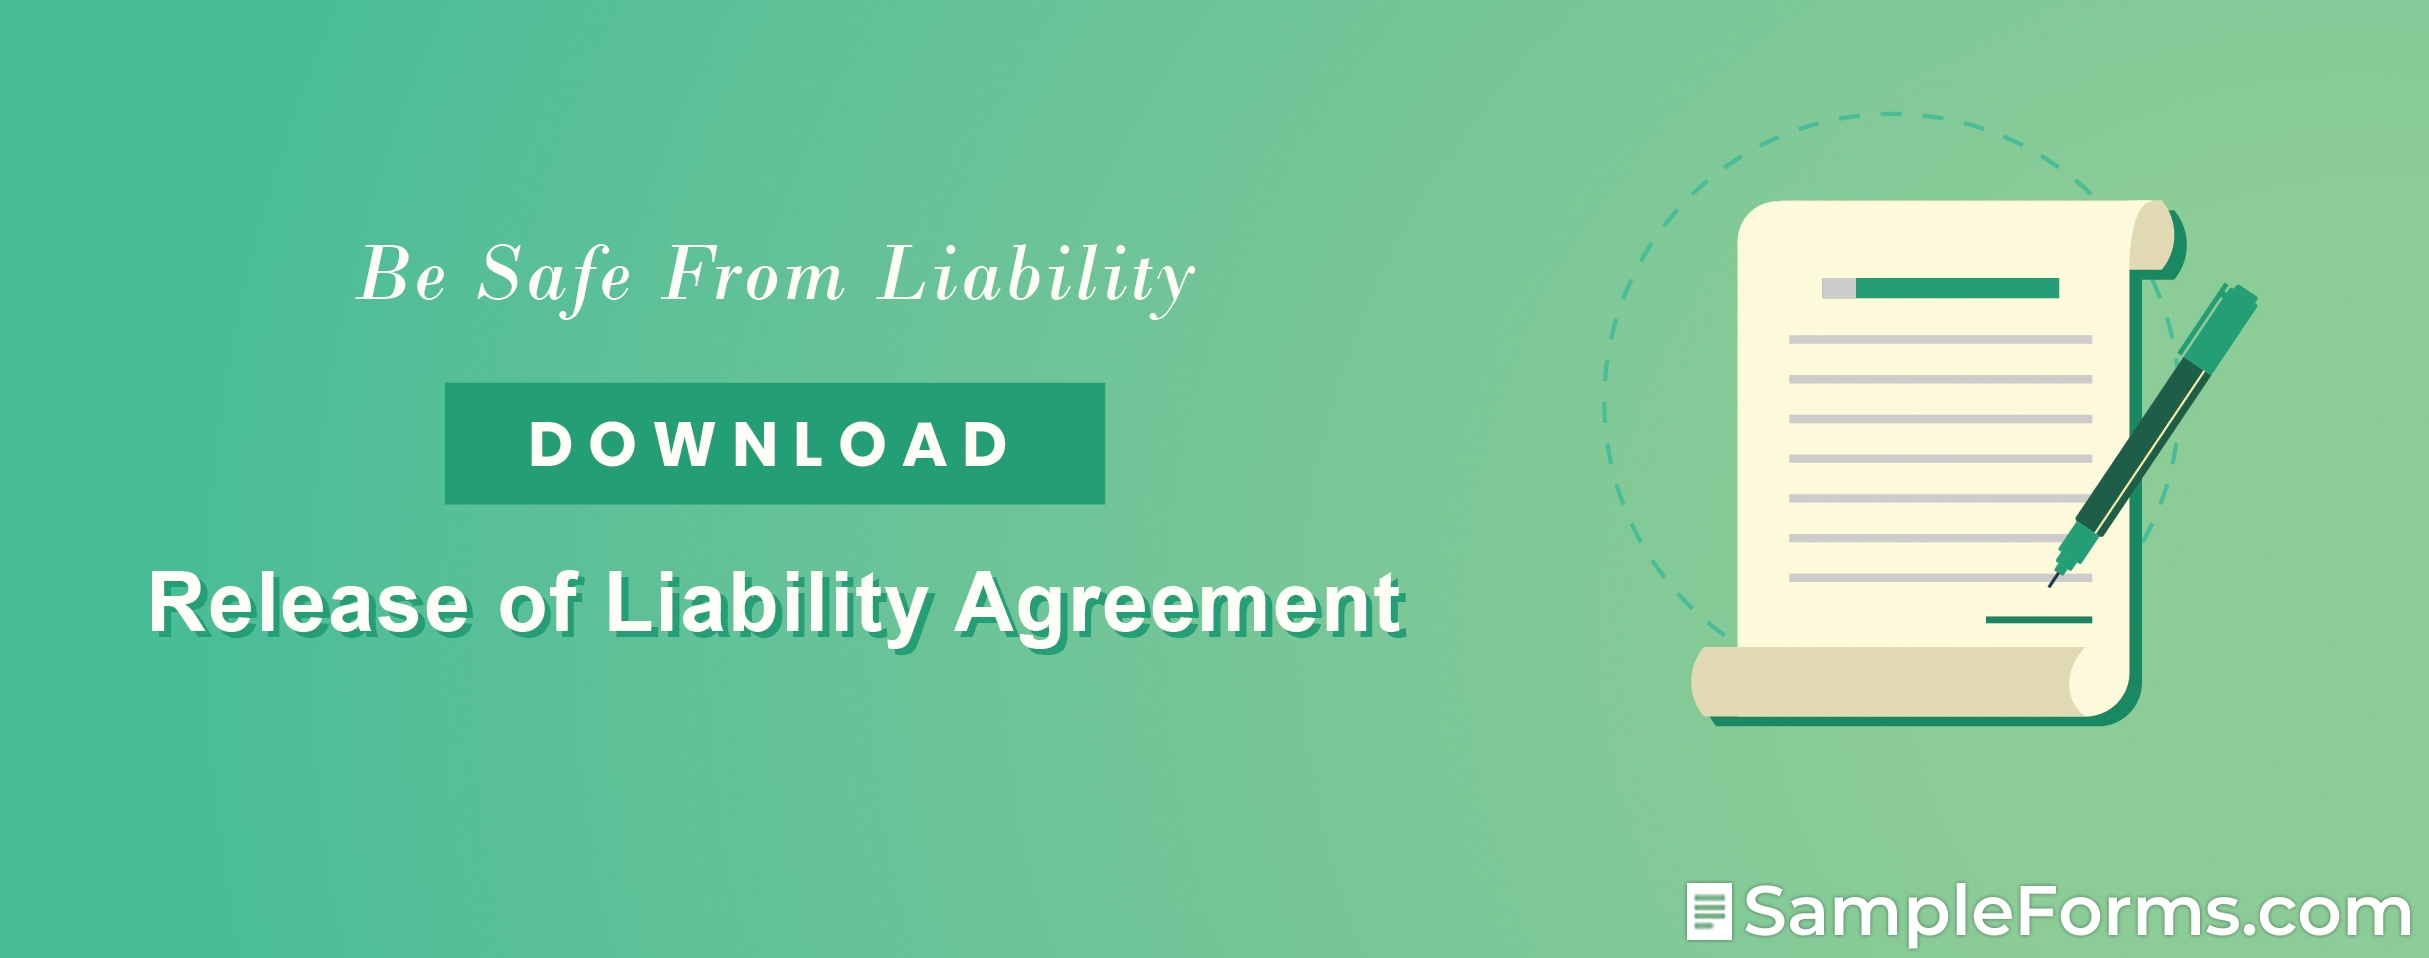 Release of Liability Agreement